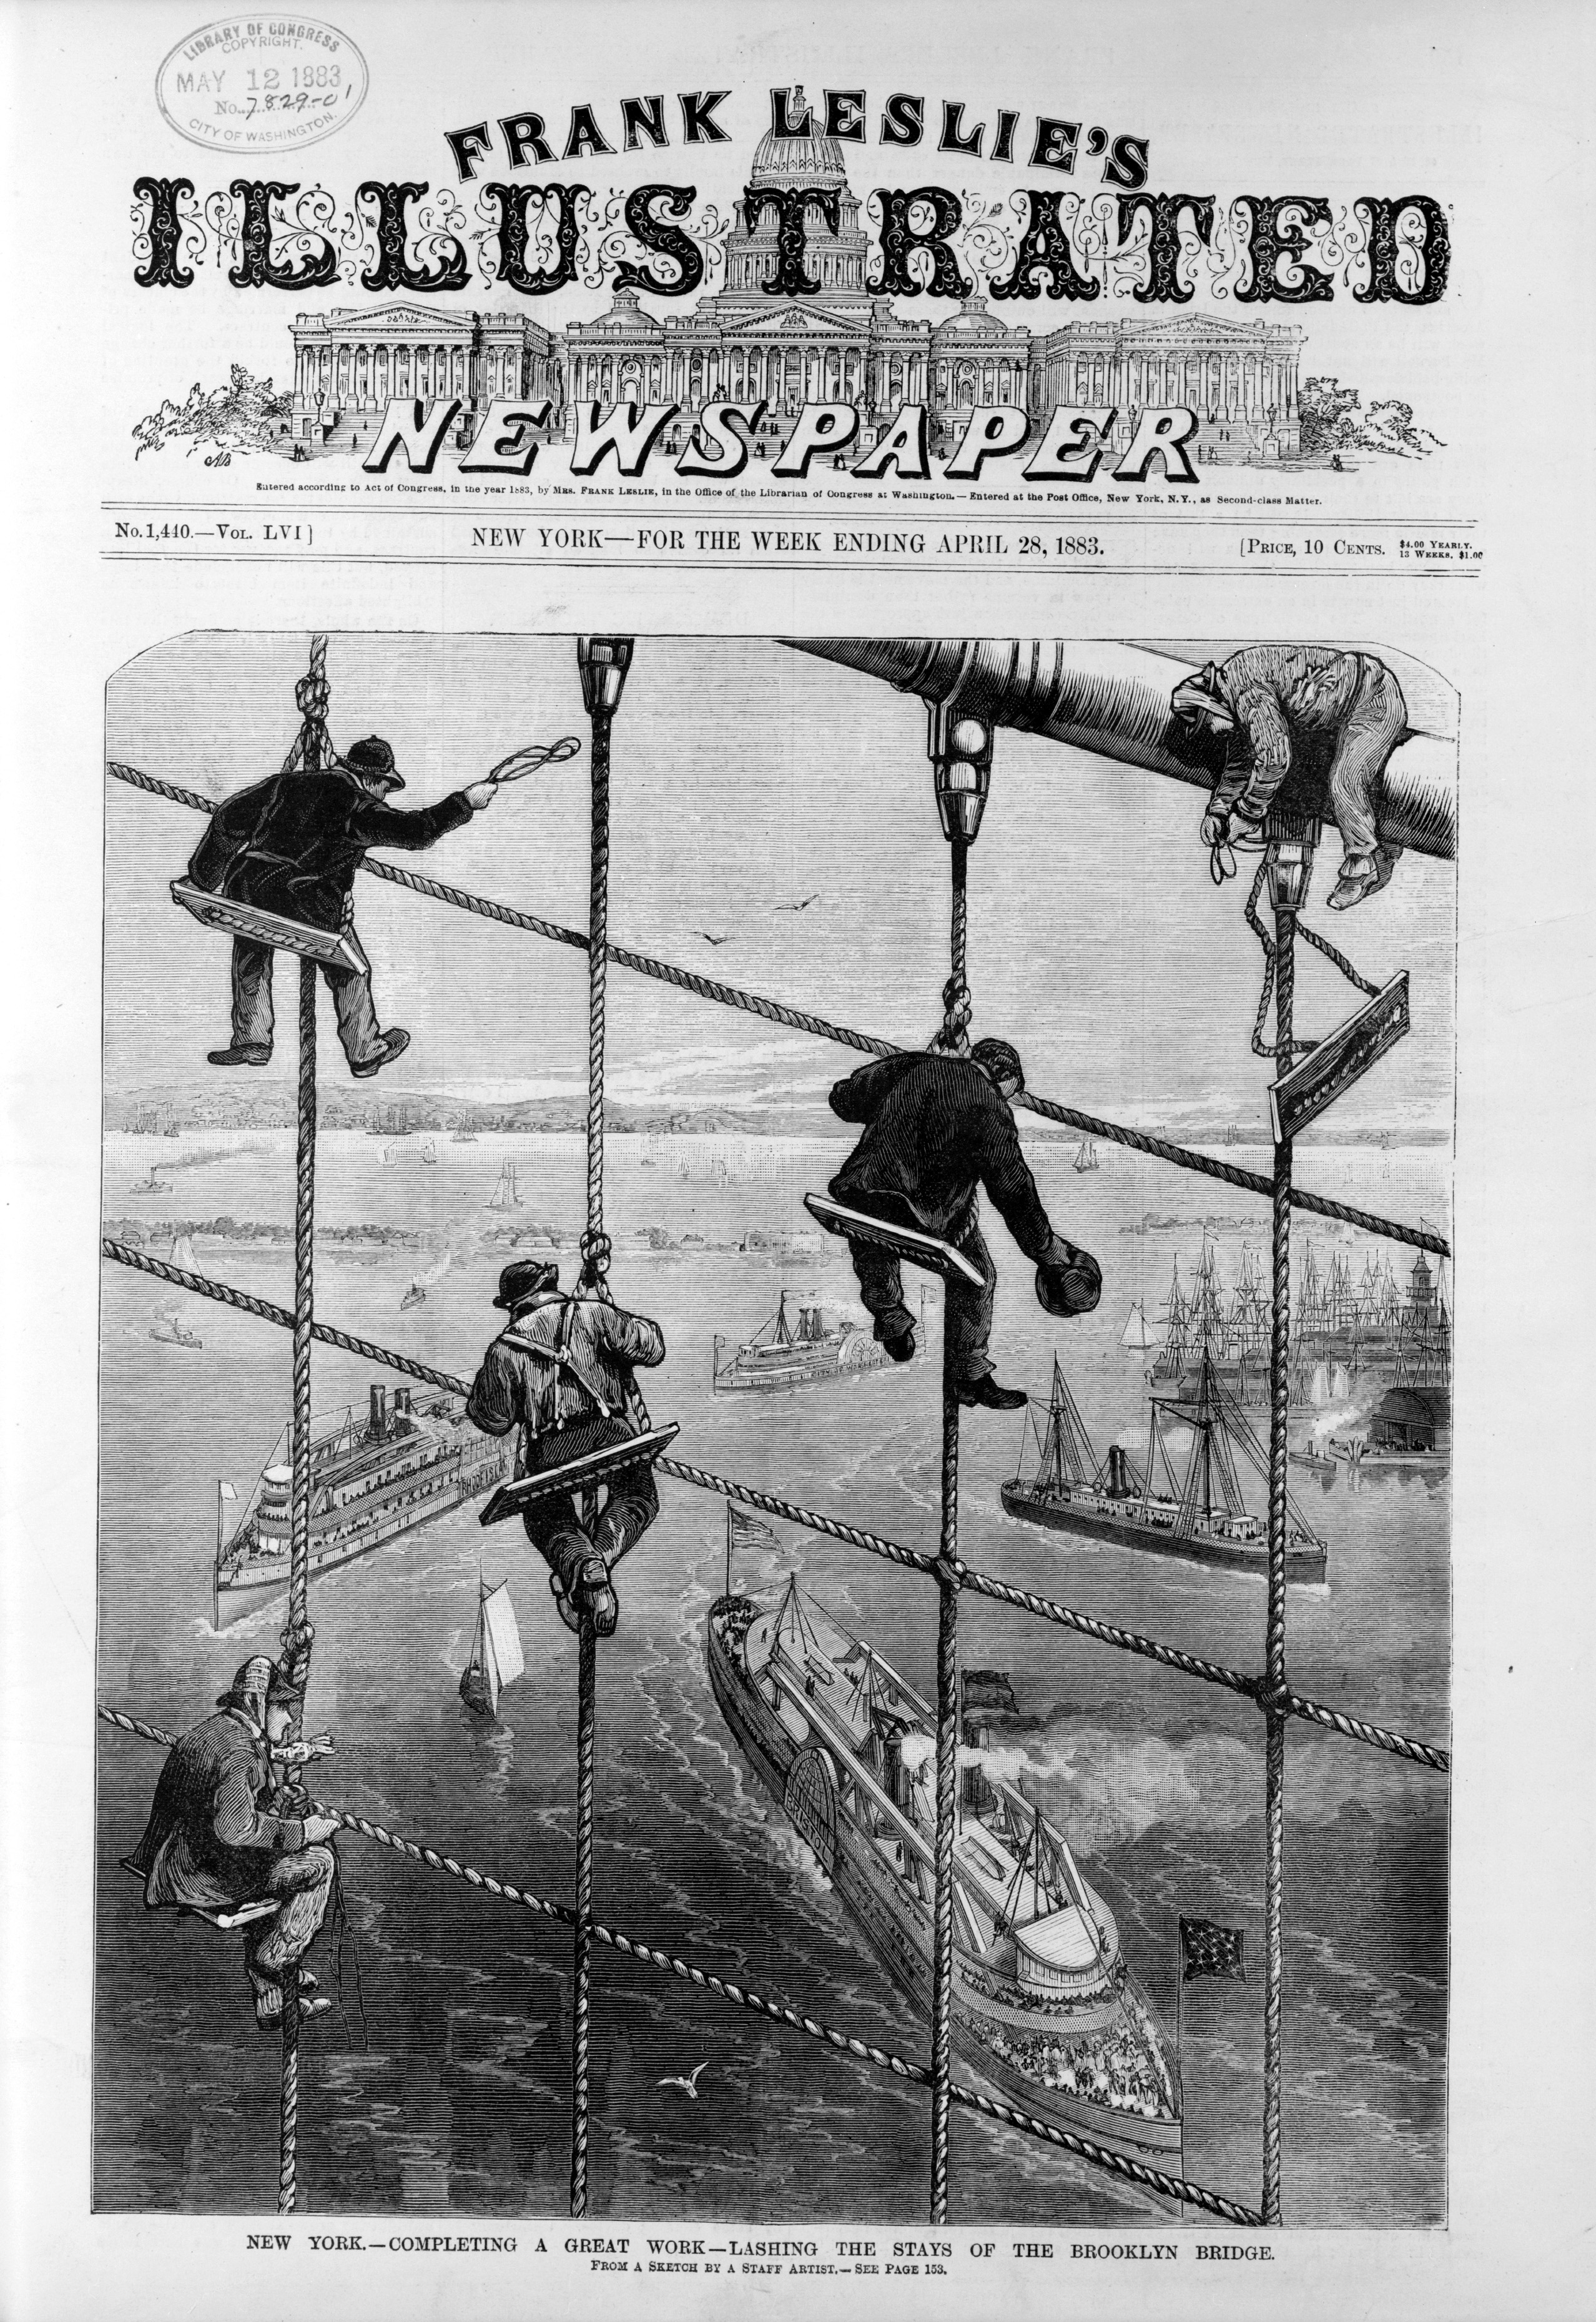 ... Frank Leslie's Illustrated Newspaper Brooklyn Bridge New York City.jpg